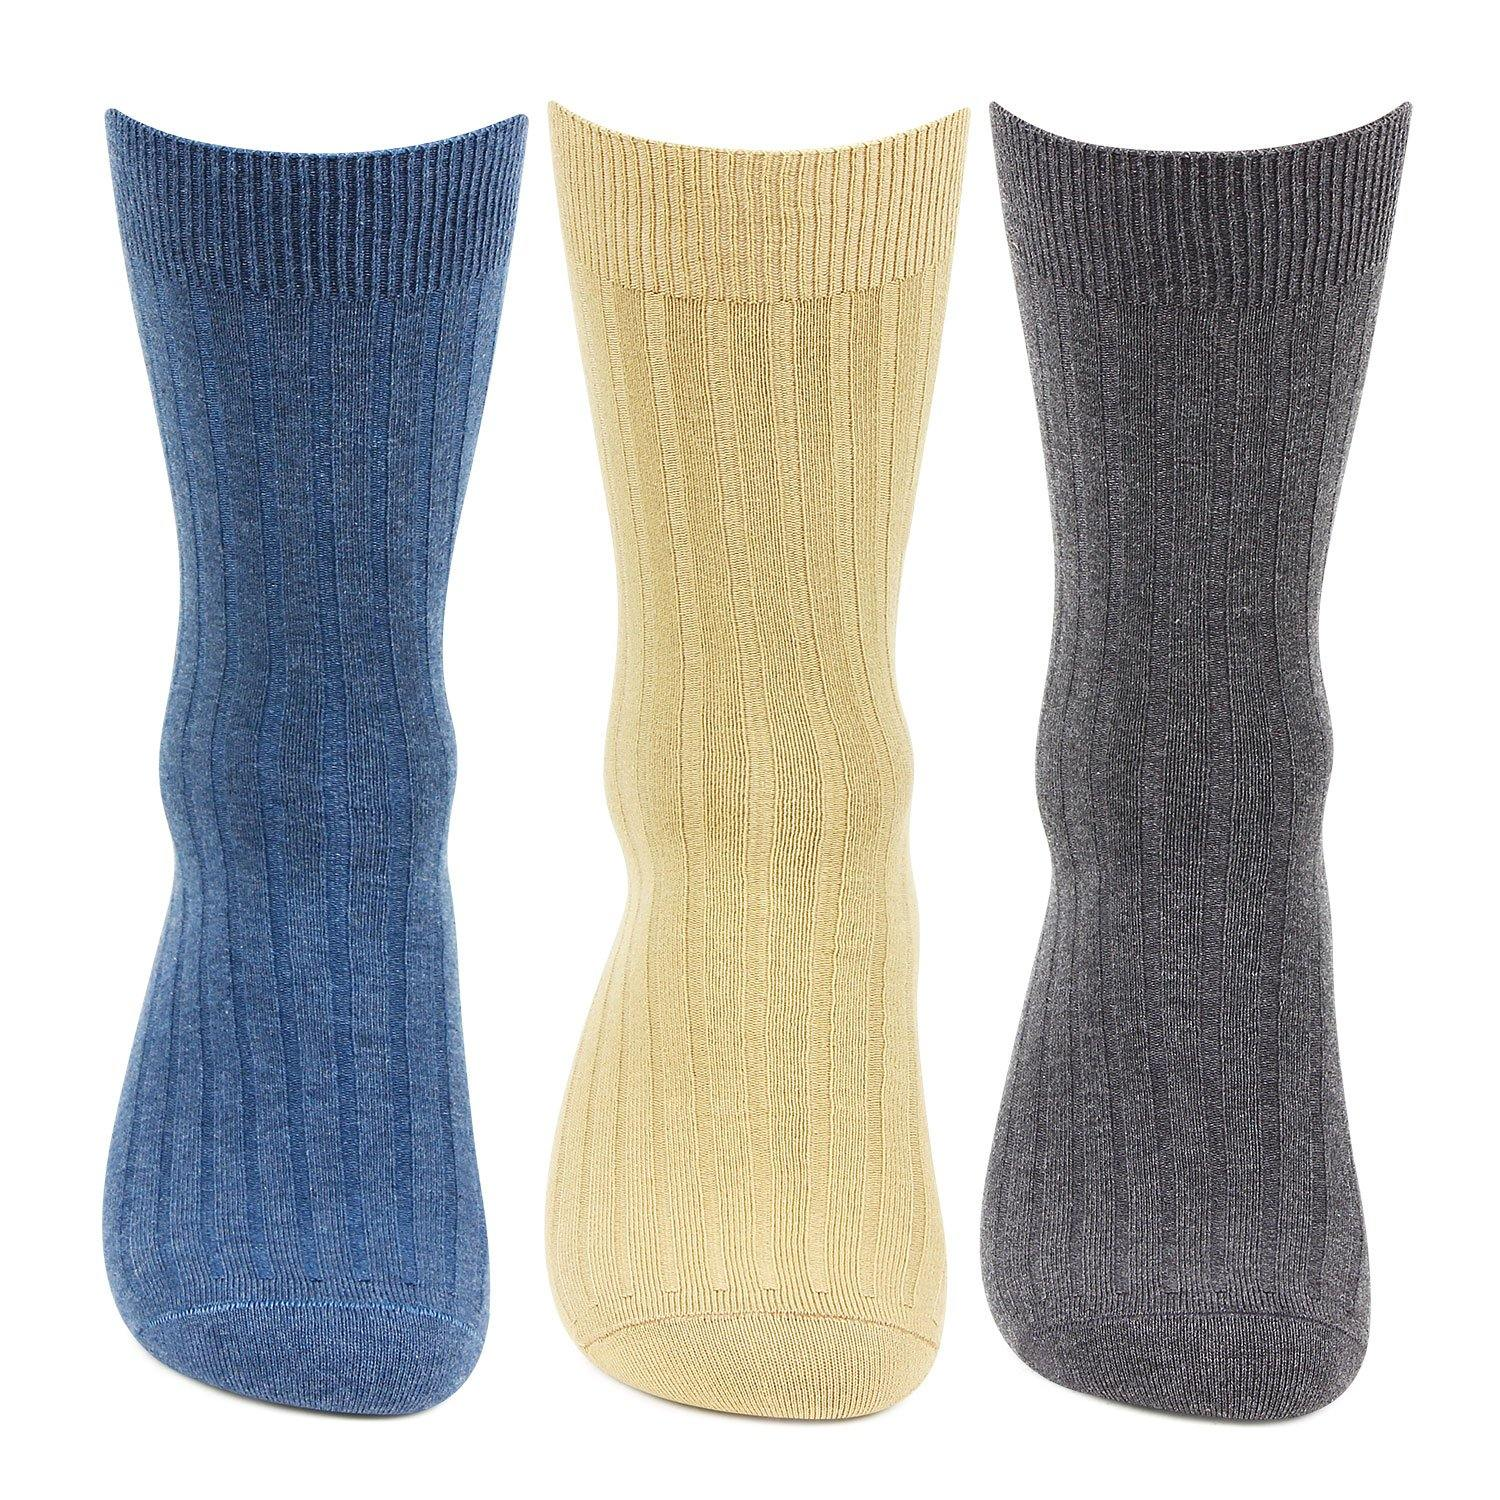 Hush Puppies Men's Cotton Crew Rib Socks - Pack of 3